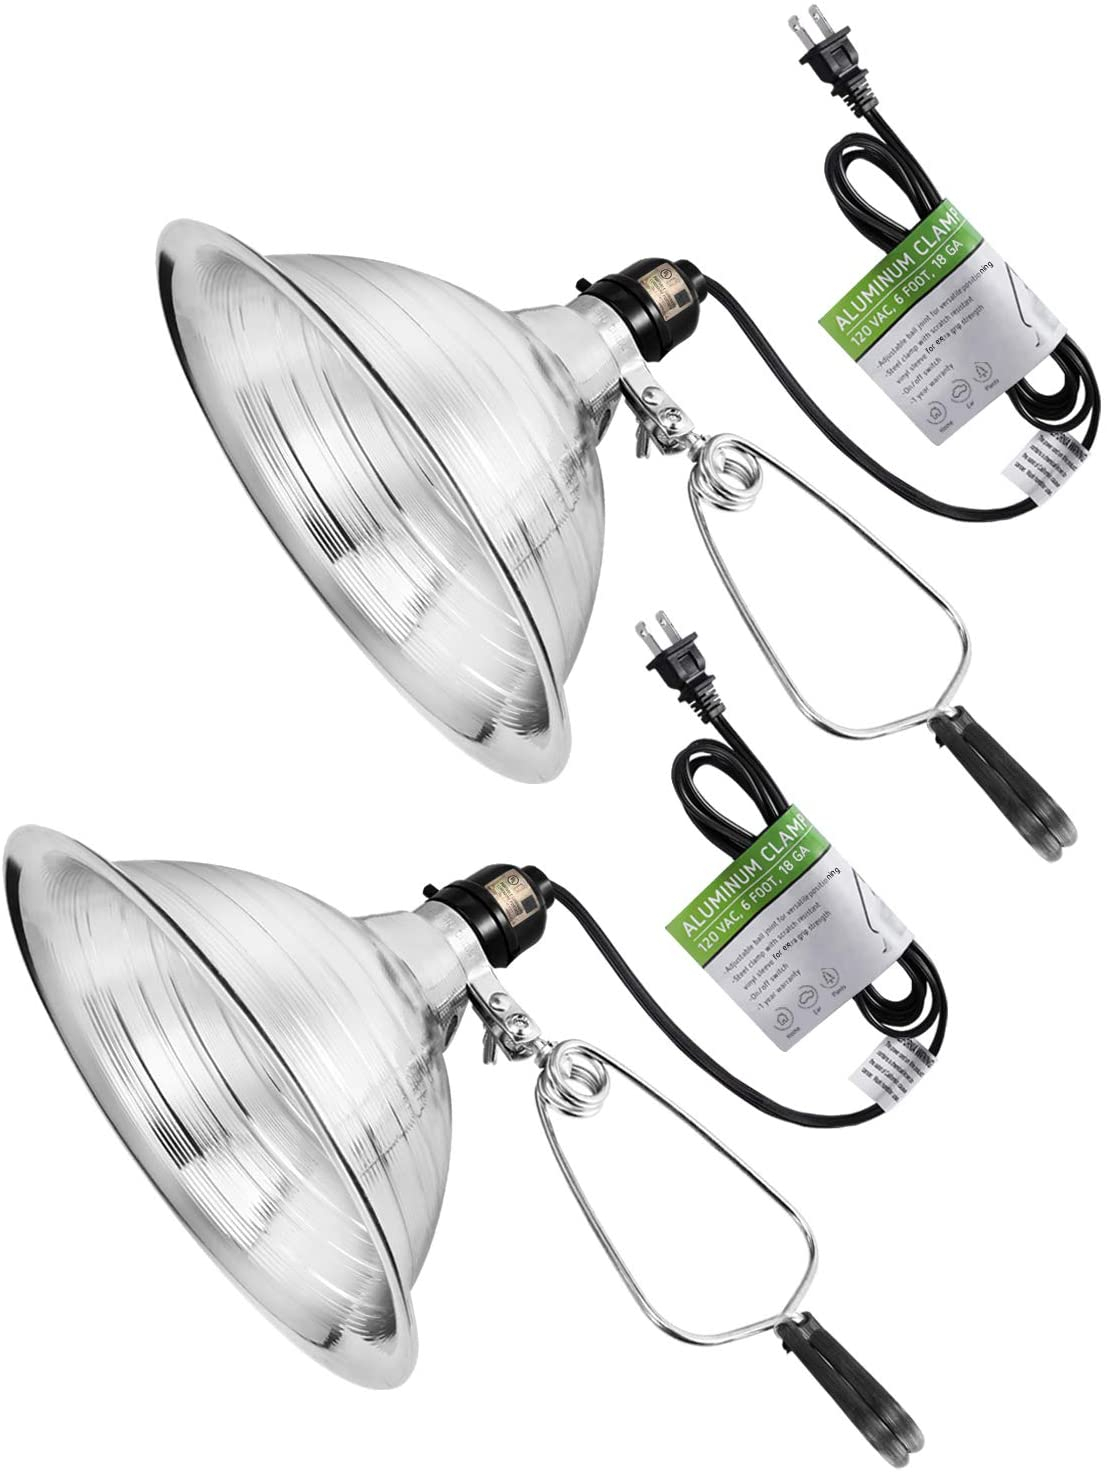 VIVOSUN Clamp Lamp Light with Detachable 8.5 Inch Aluminum Reflector up to 150 W - $23.99 - $97.99